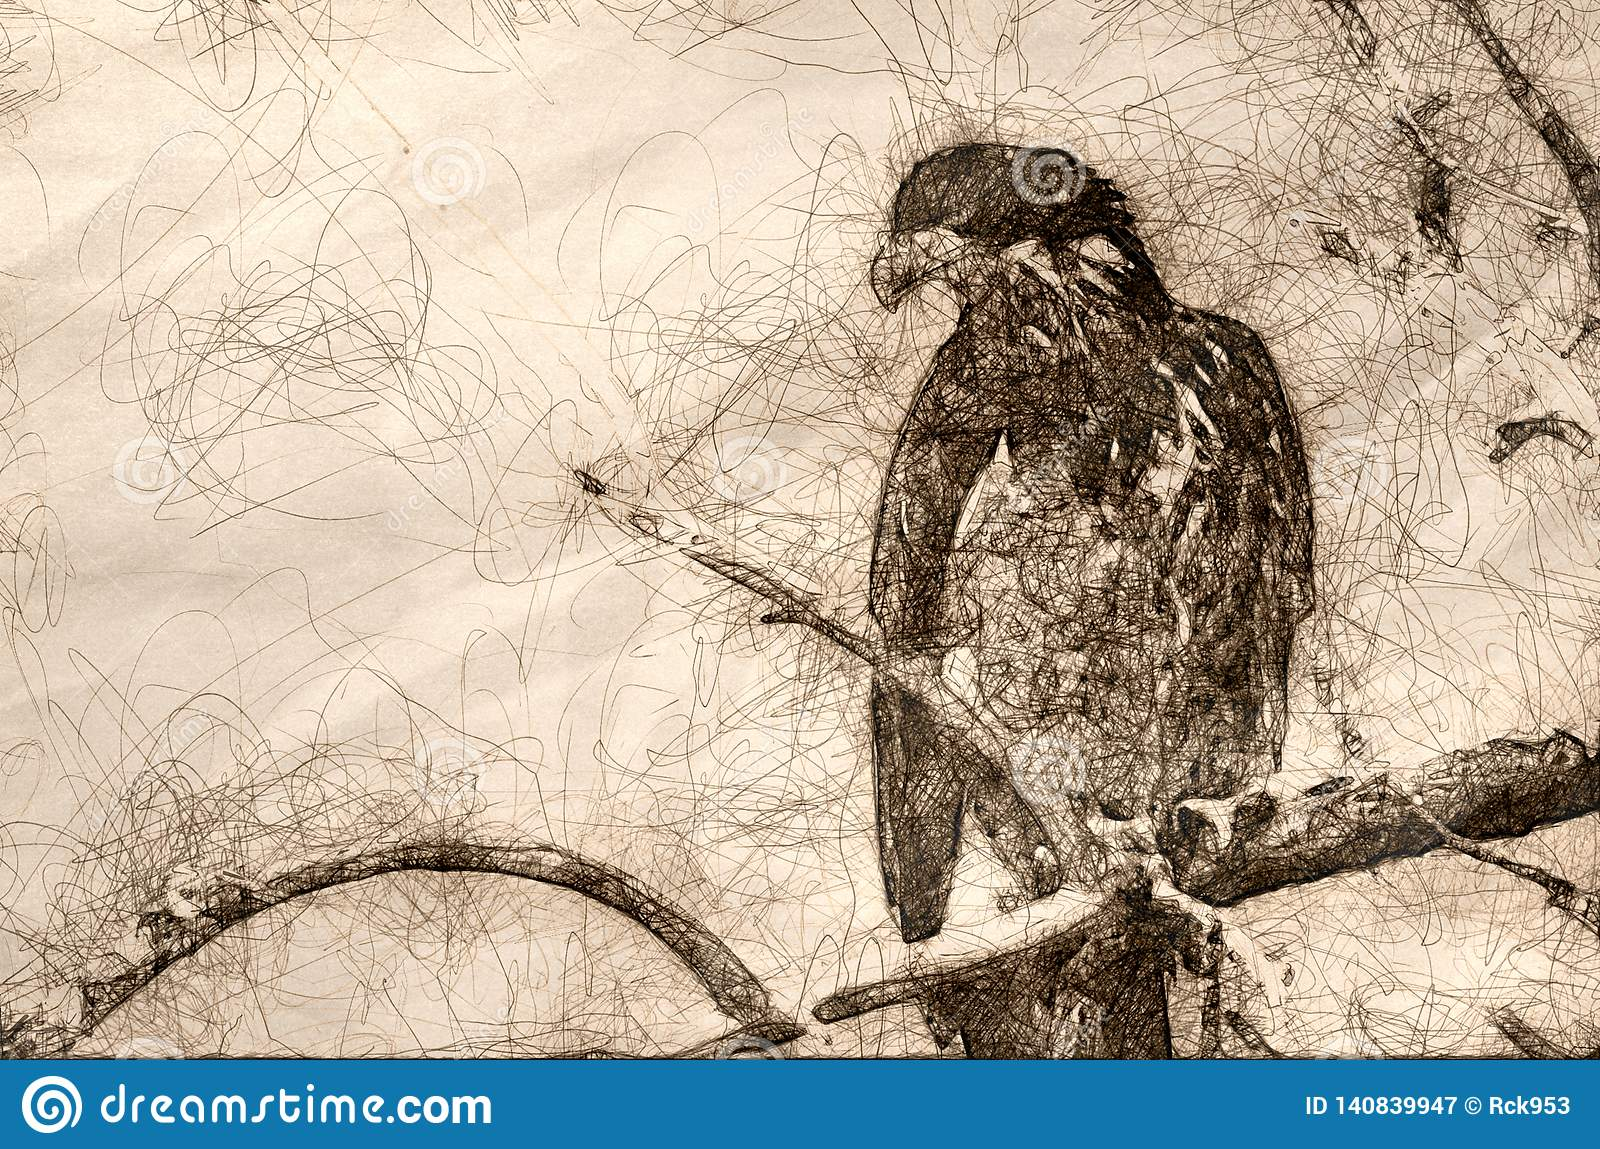 Sketch of a young bald eagle surveying the area while perched high in a barren tree